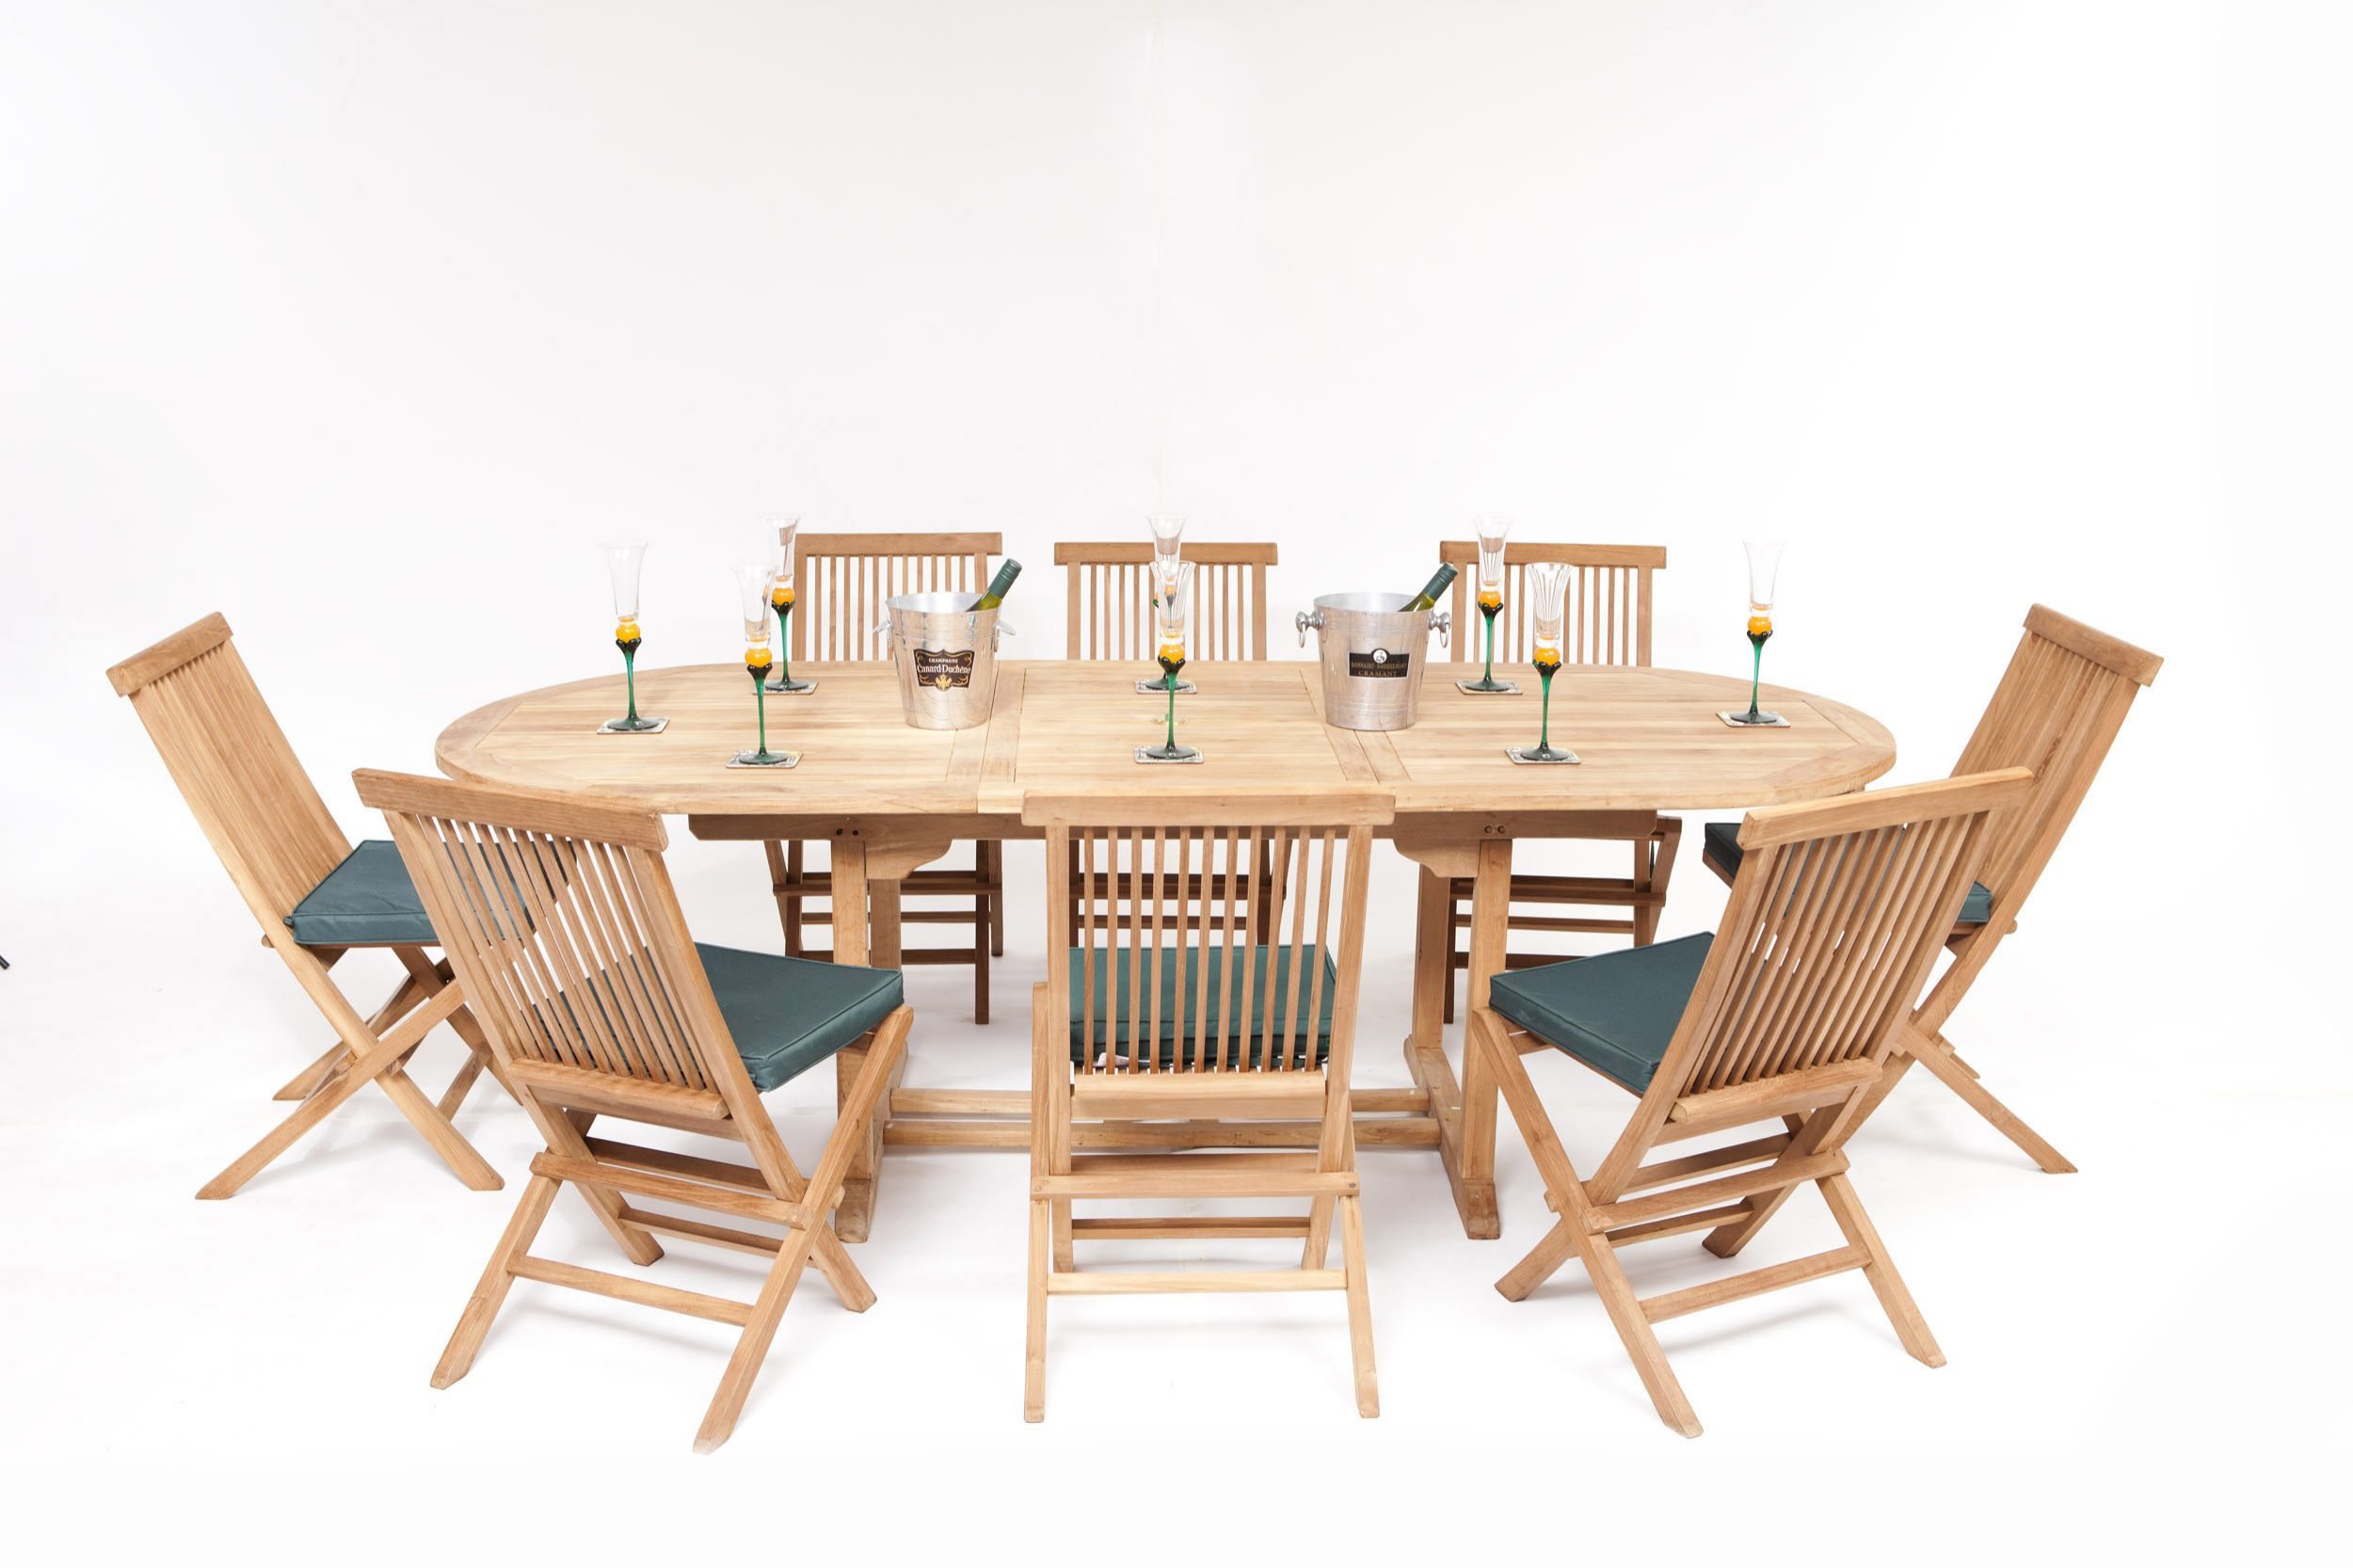 Garden Furniture 8 Seater Honfleur teak garden furniture set humber imports honfleur 8 seater outdoor furniture set workwithnaturefo